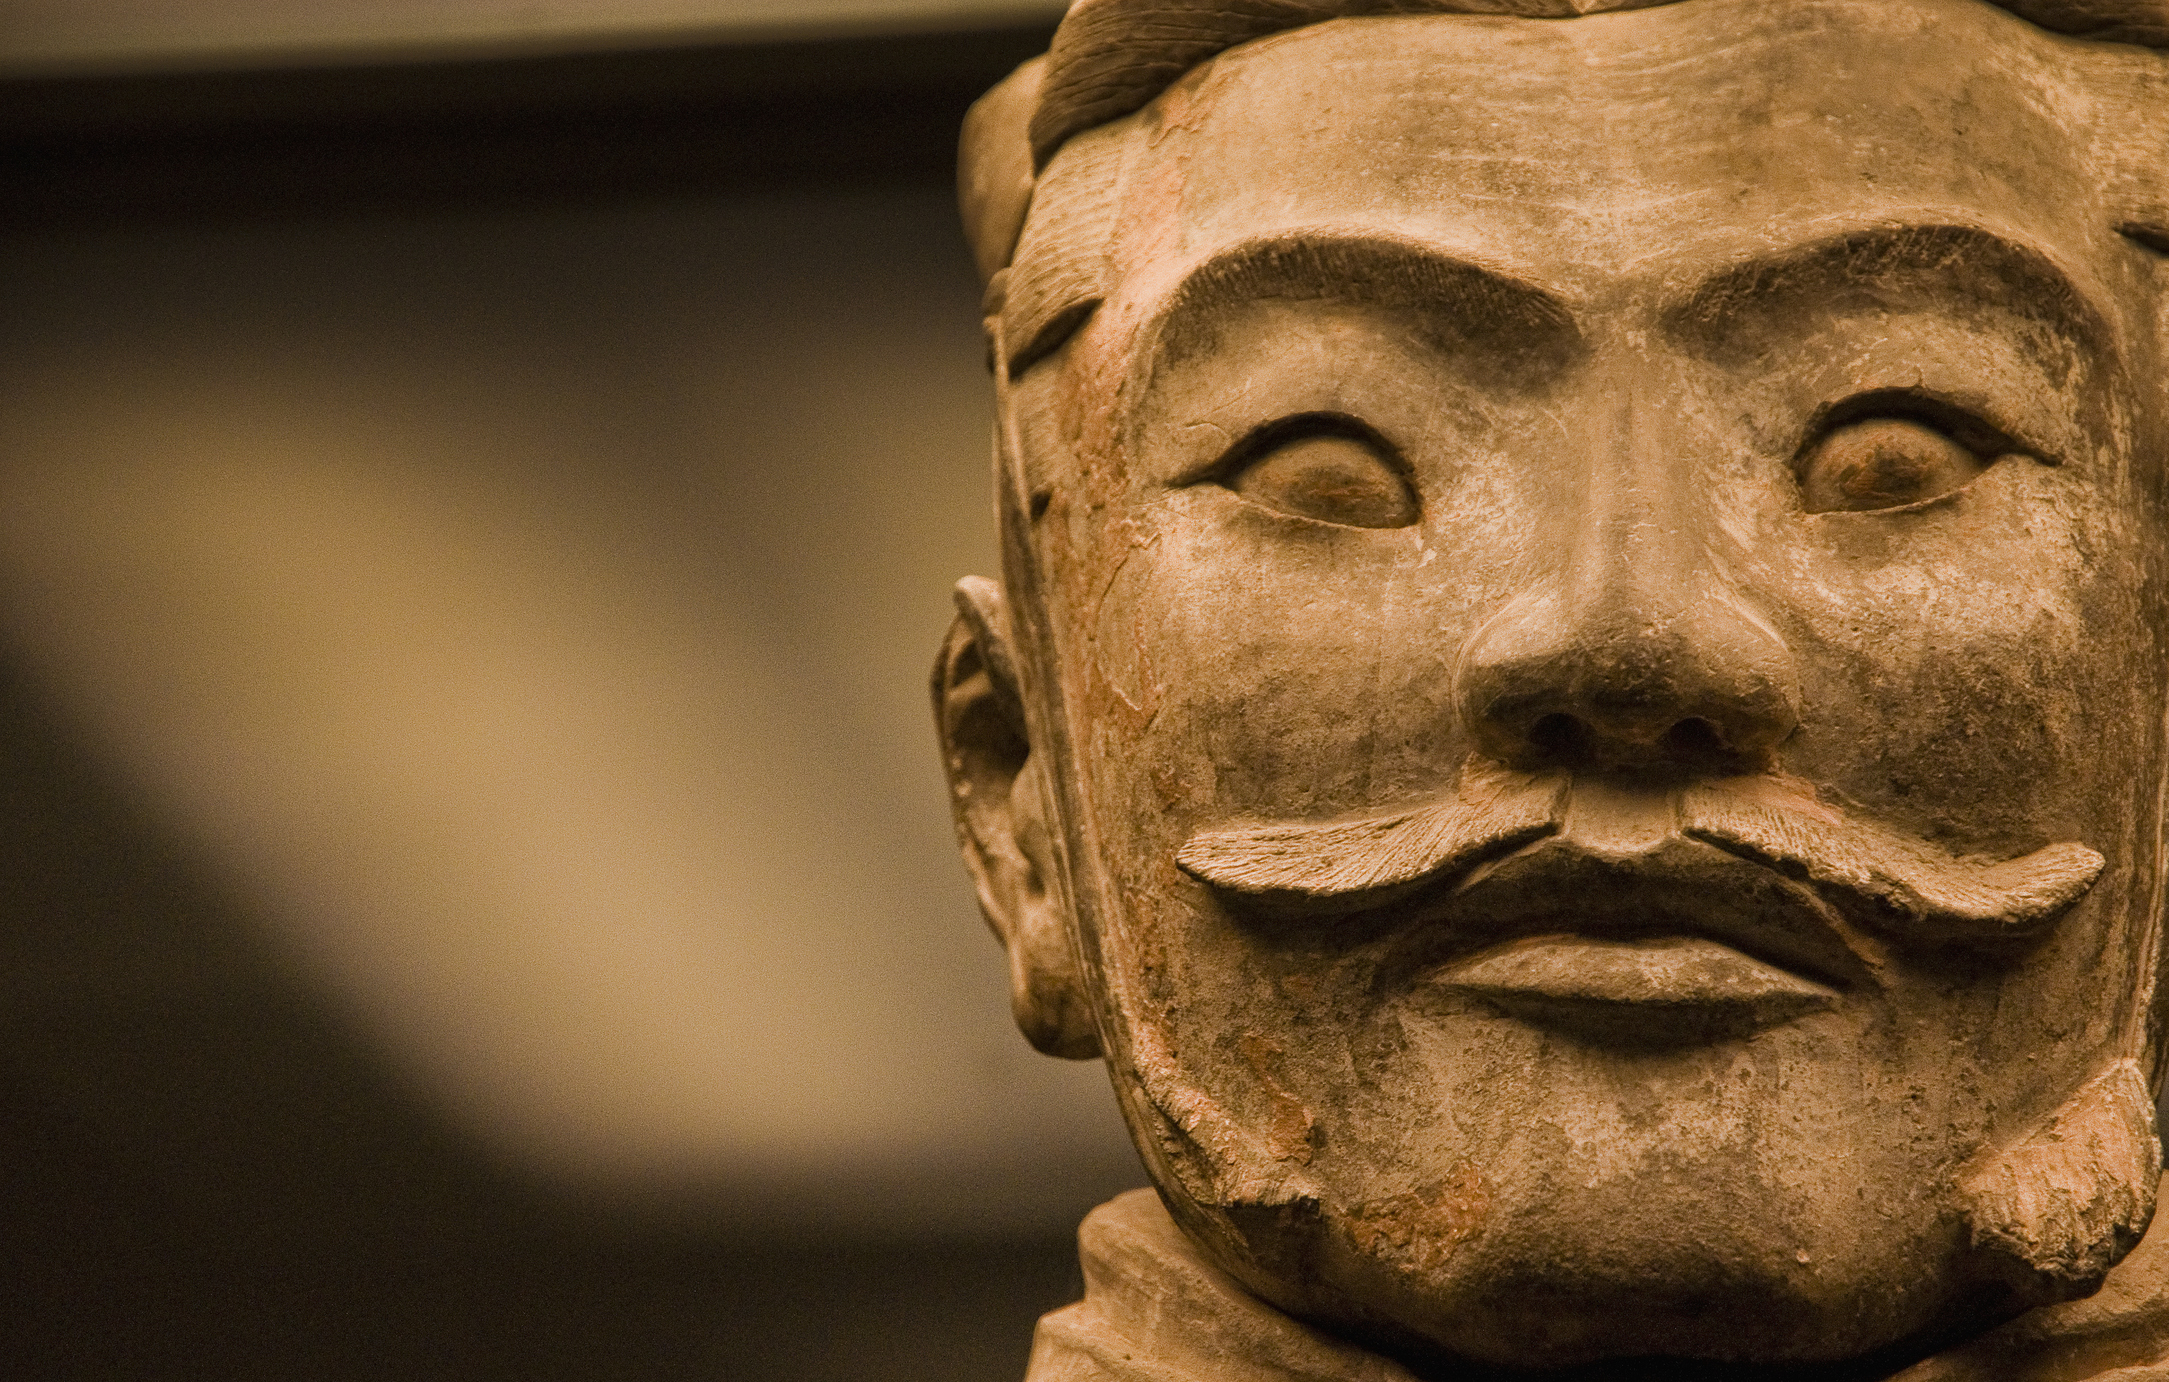 Greeks May Have Influenced China's Terra Cotta Army